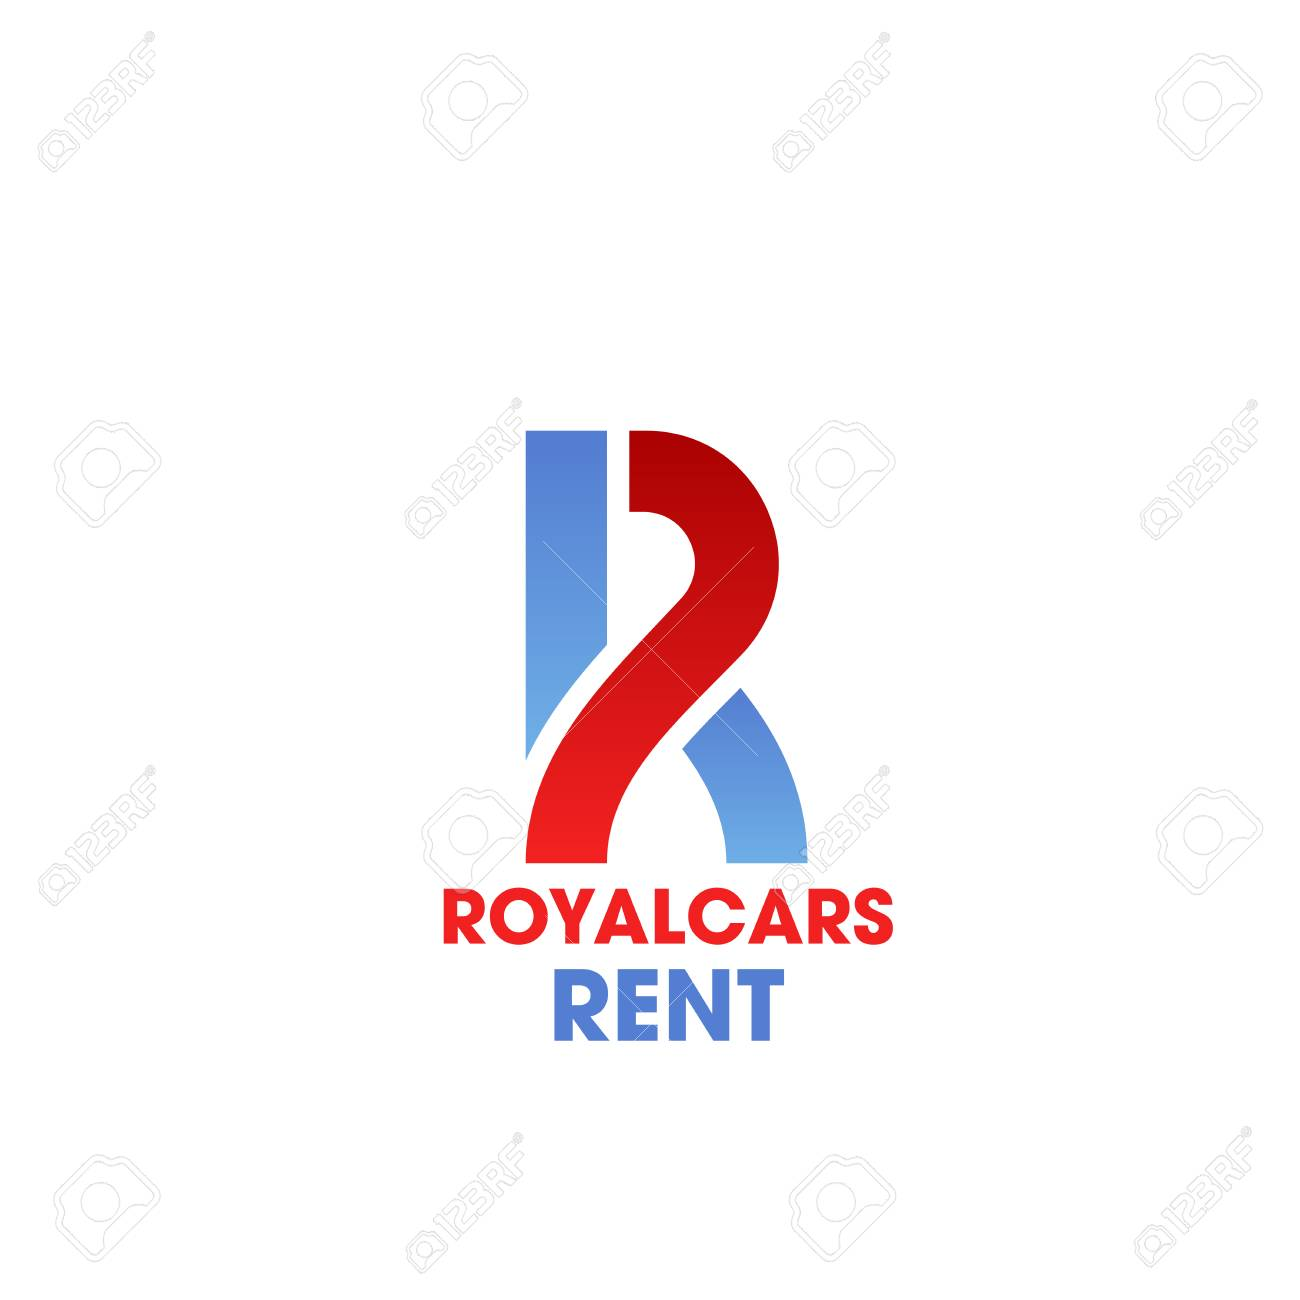 Royal Cars Rent R Letter Icon For Car Rental Luxury Service Or